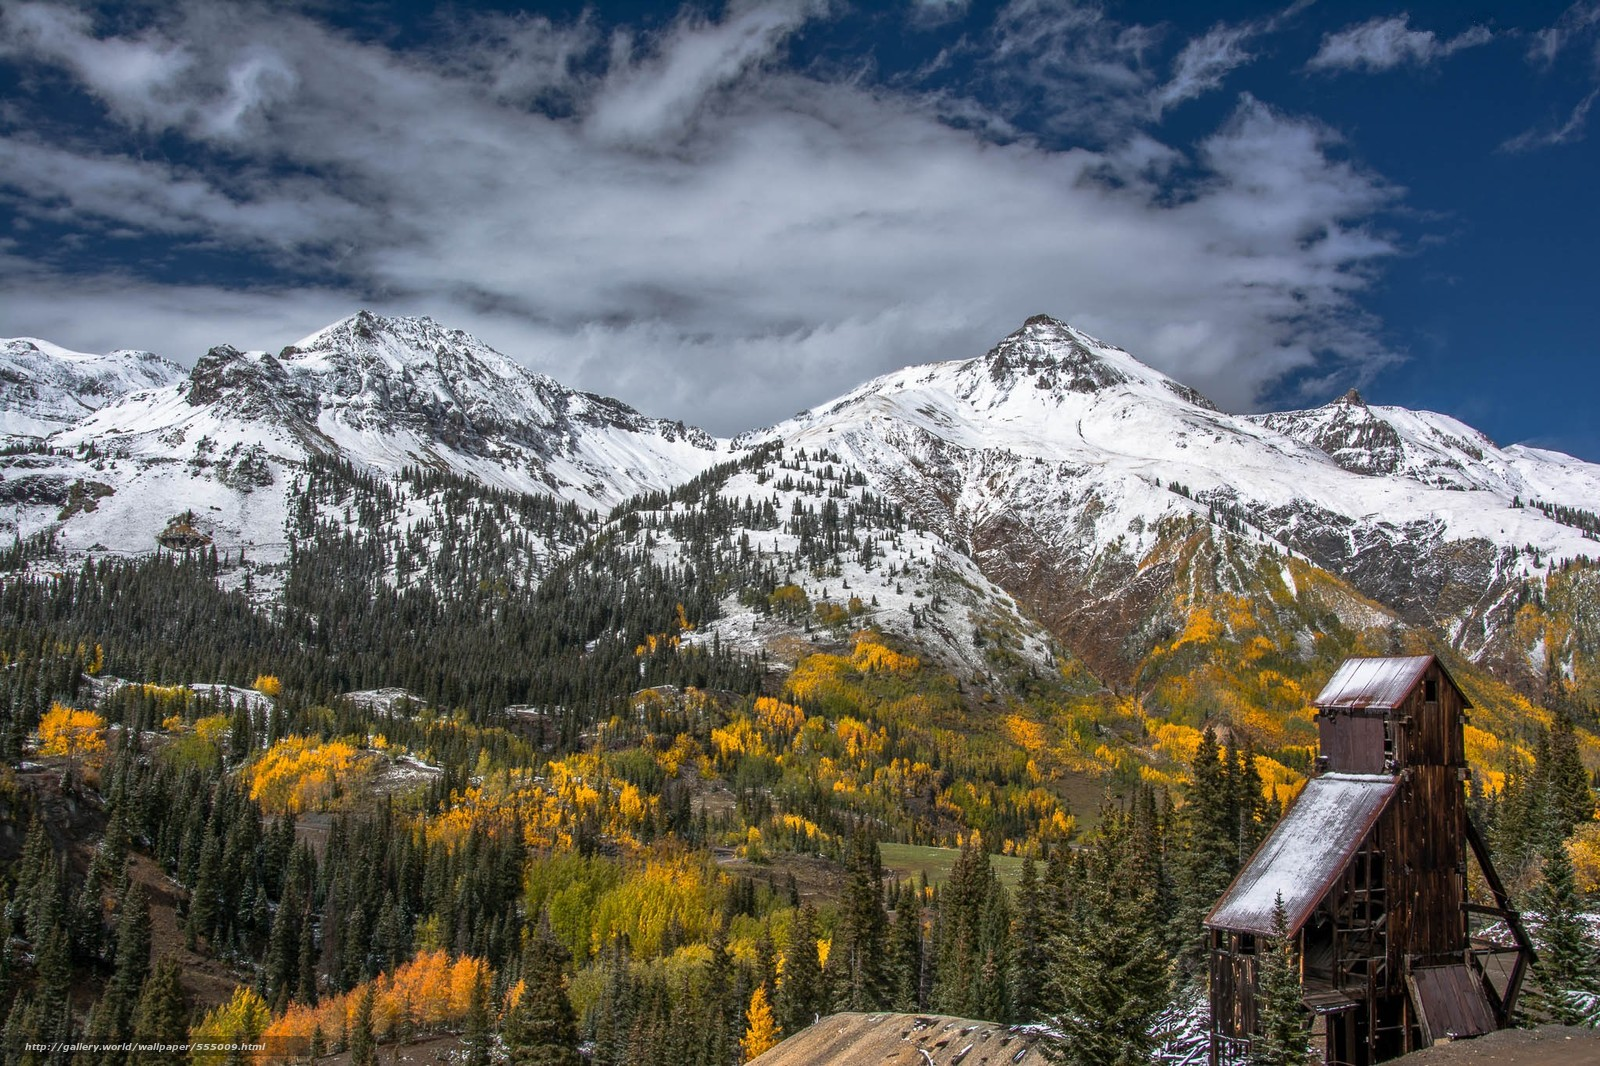 Download wallpaper Red Mountain Mining District Ouray Colorado 1600x1066